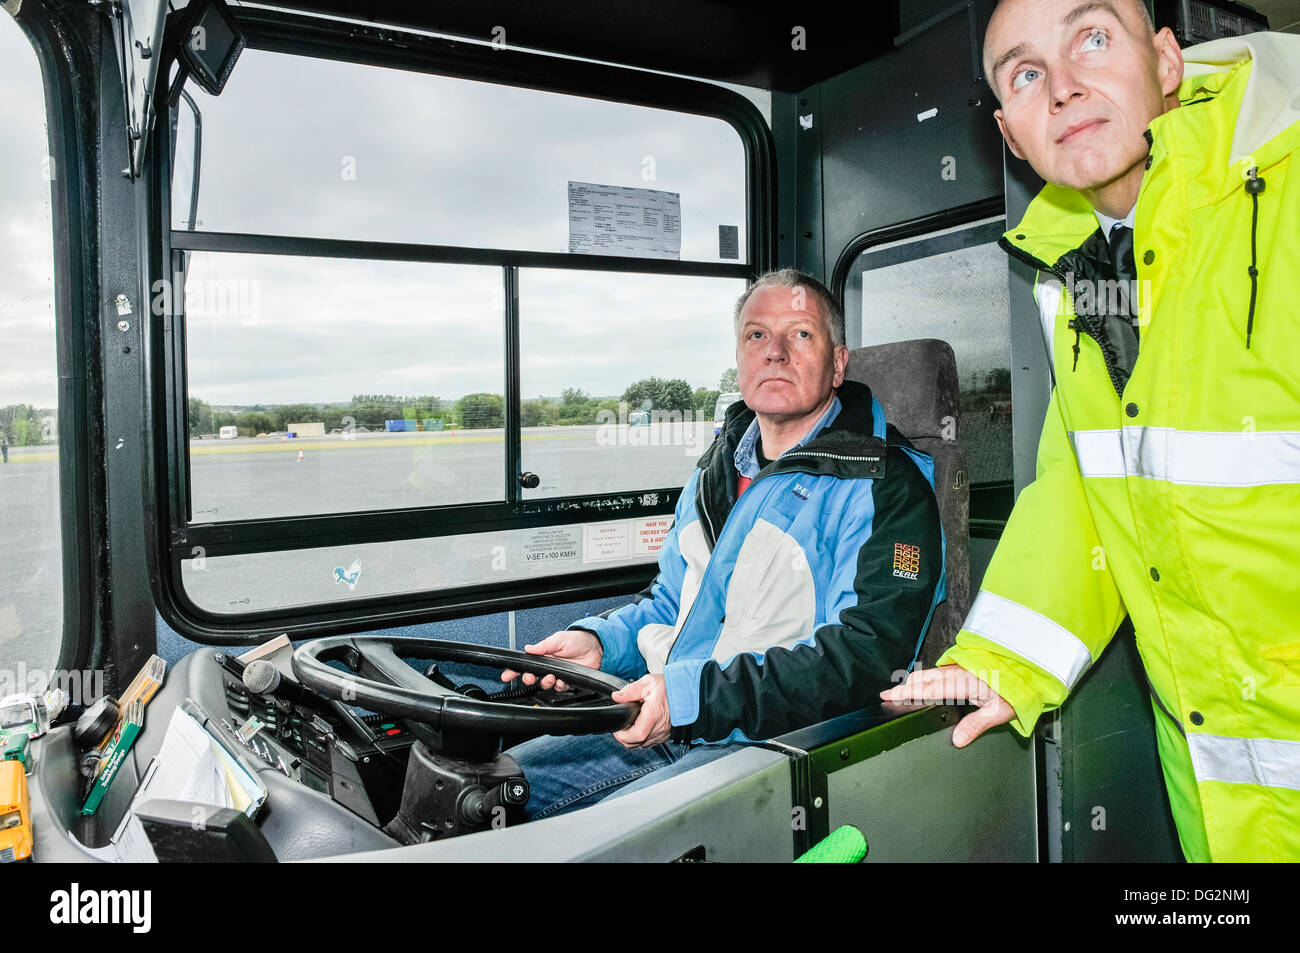 A trainee receives instruction from a bus driving instructor - Stock Image